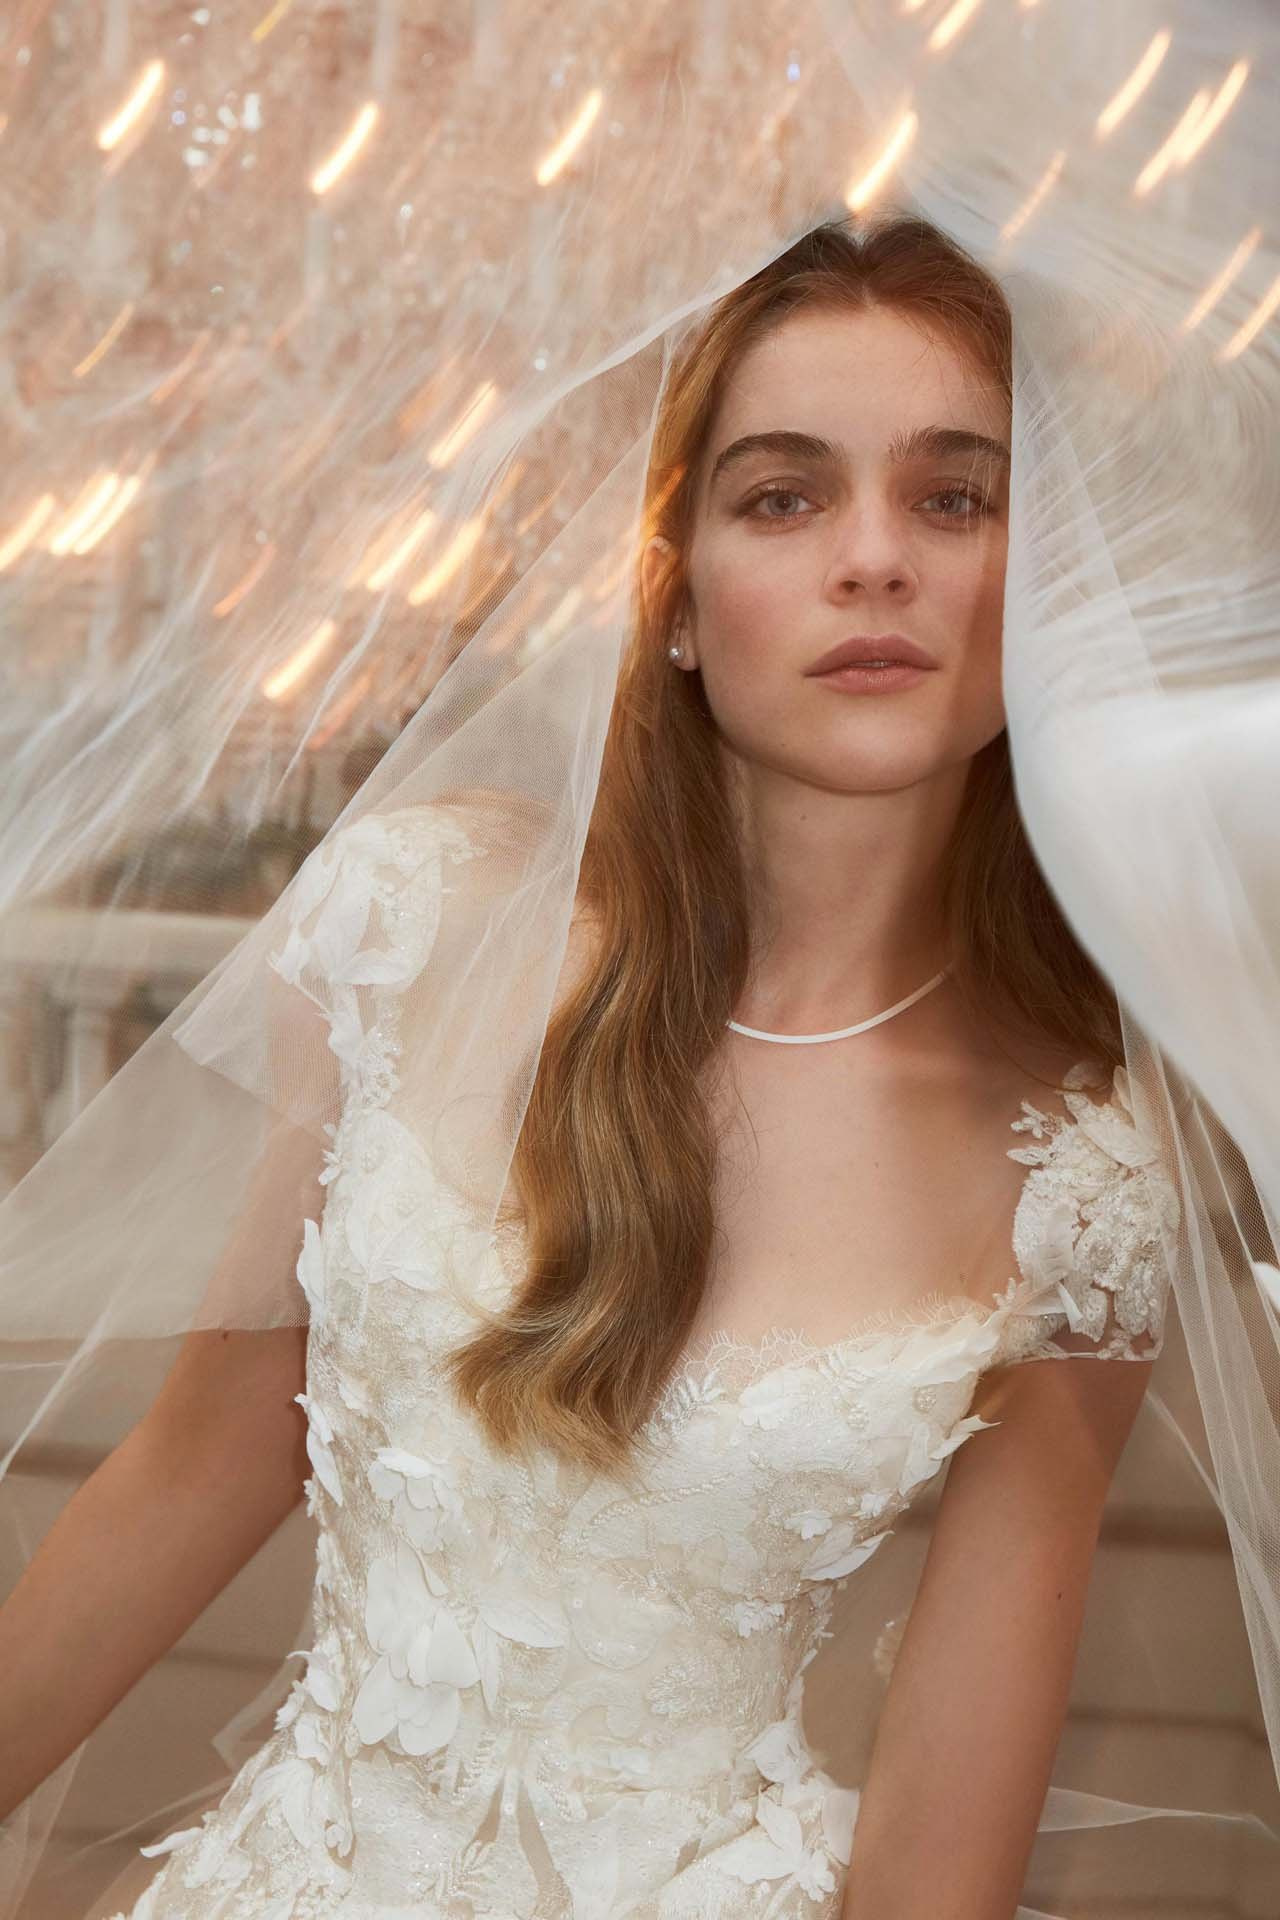 Behind the veil: all you need to know about a bride's most romantic accessory